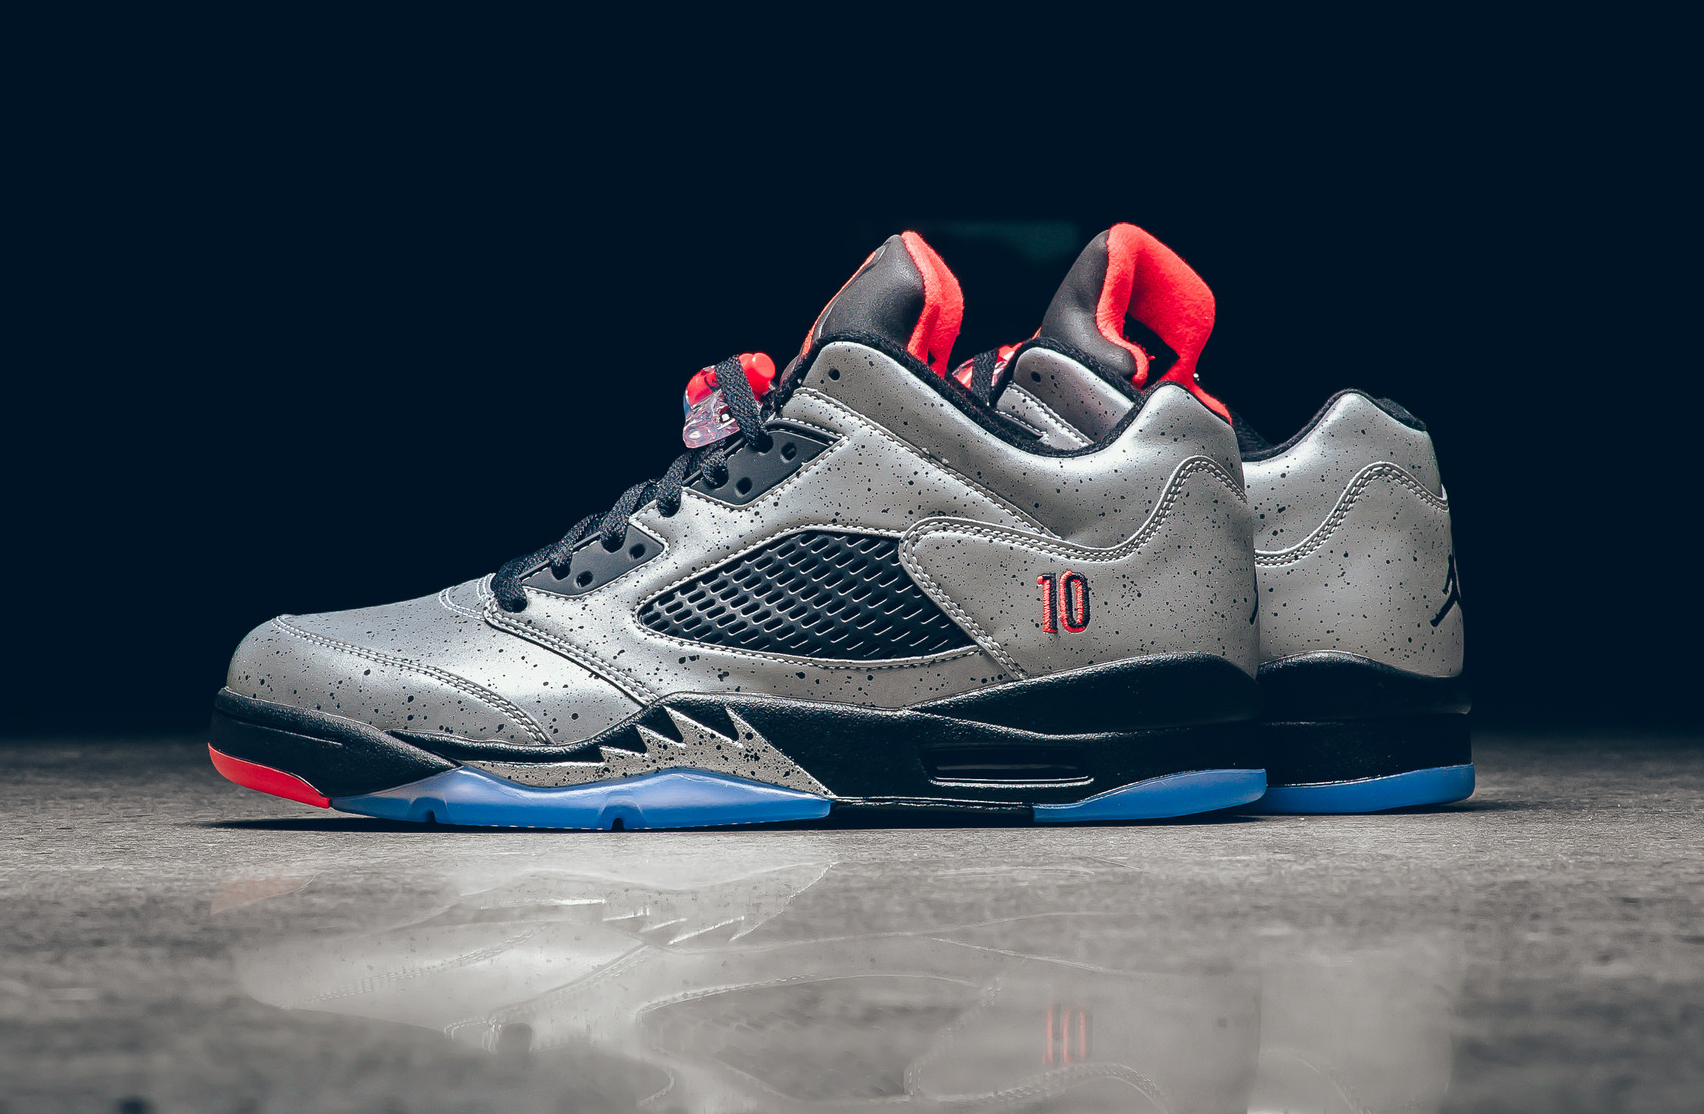 acheter chaussure Air Jordan 5 Retro Low 'Neymar Jr' (Reflective Silver Infrared 23) (1-1)